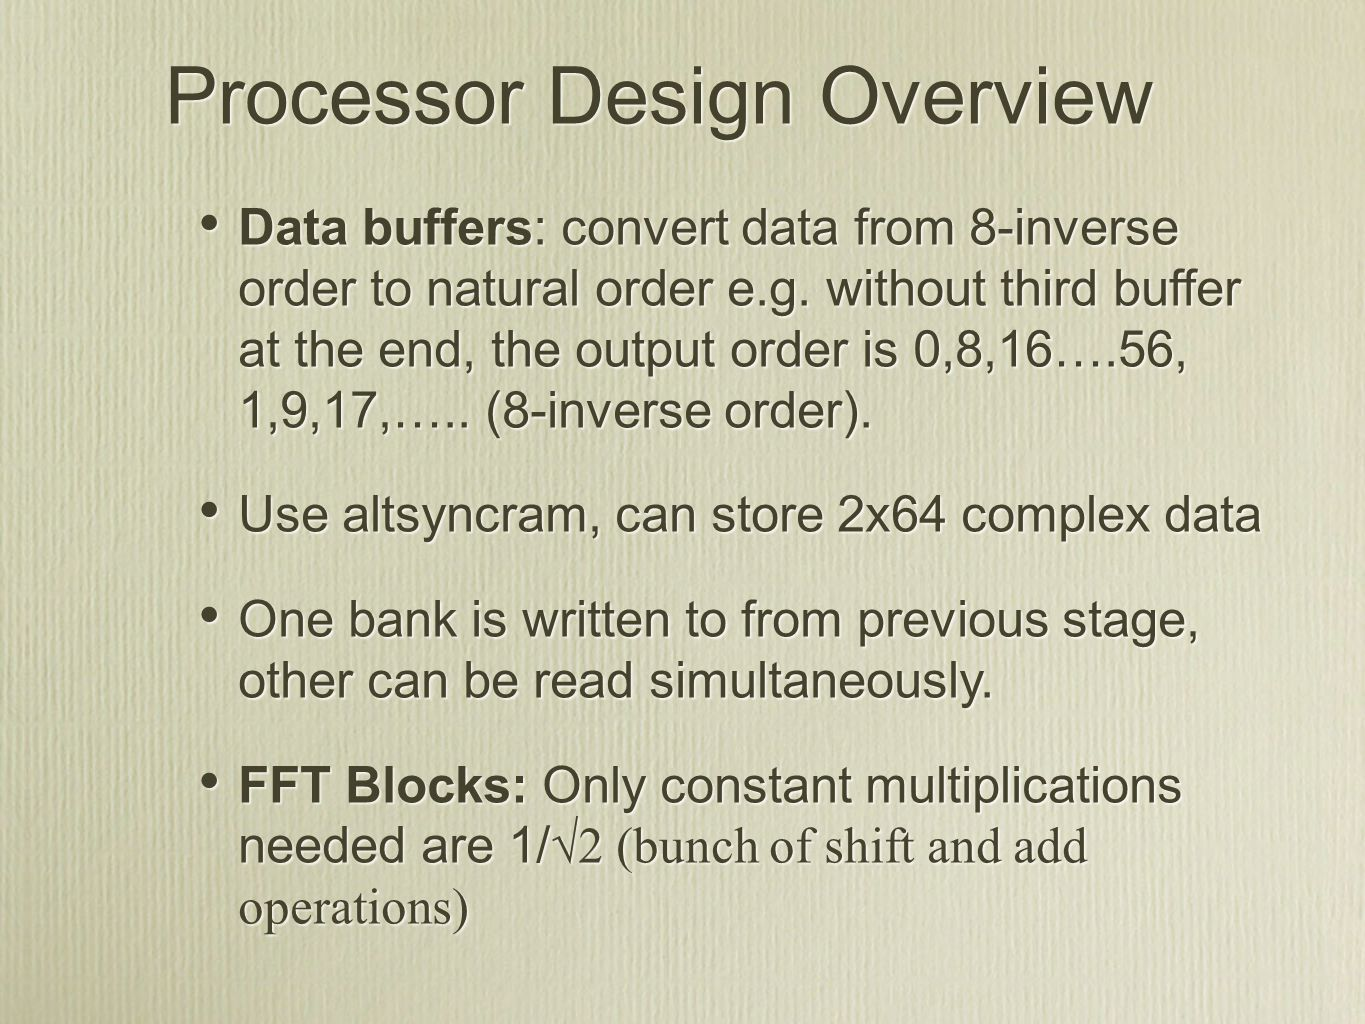 Processor Design Overview Data buffers: convert data from 8-inverse order to natural order e.g. without third buffer at the end, the output order is 0